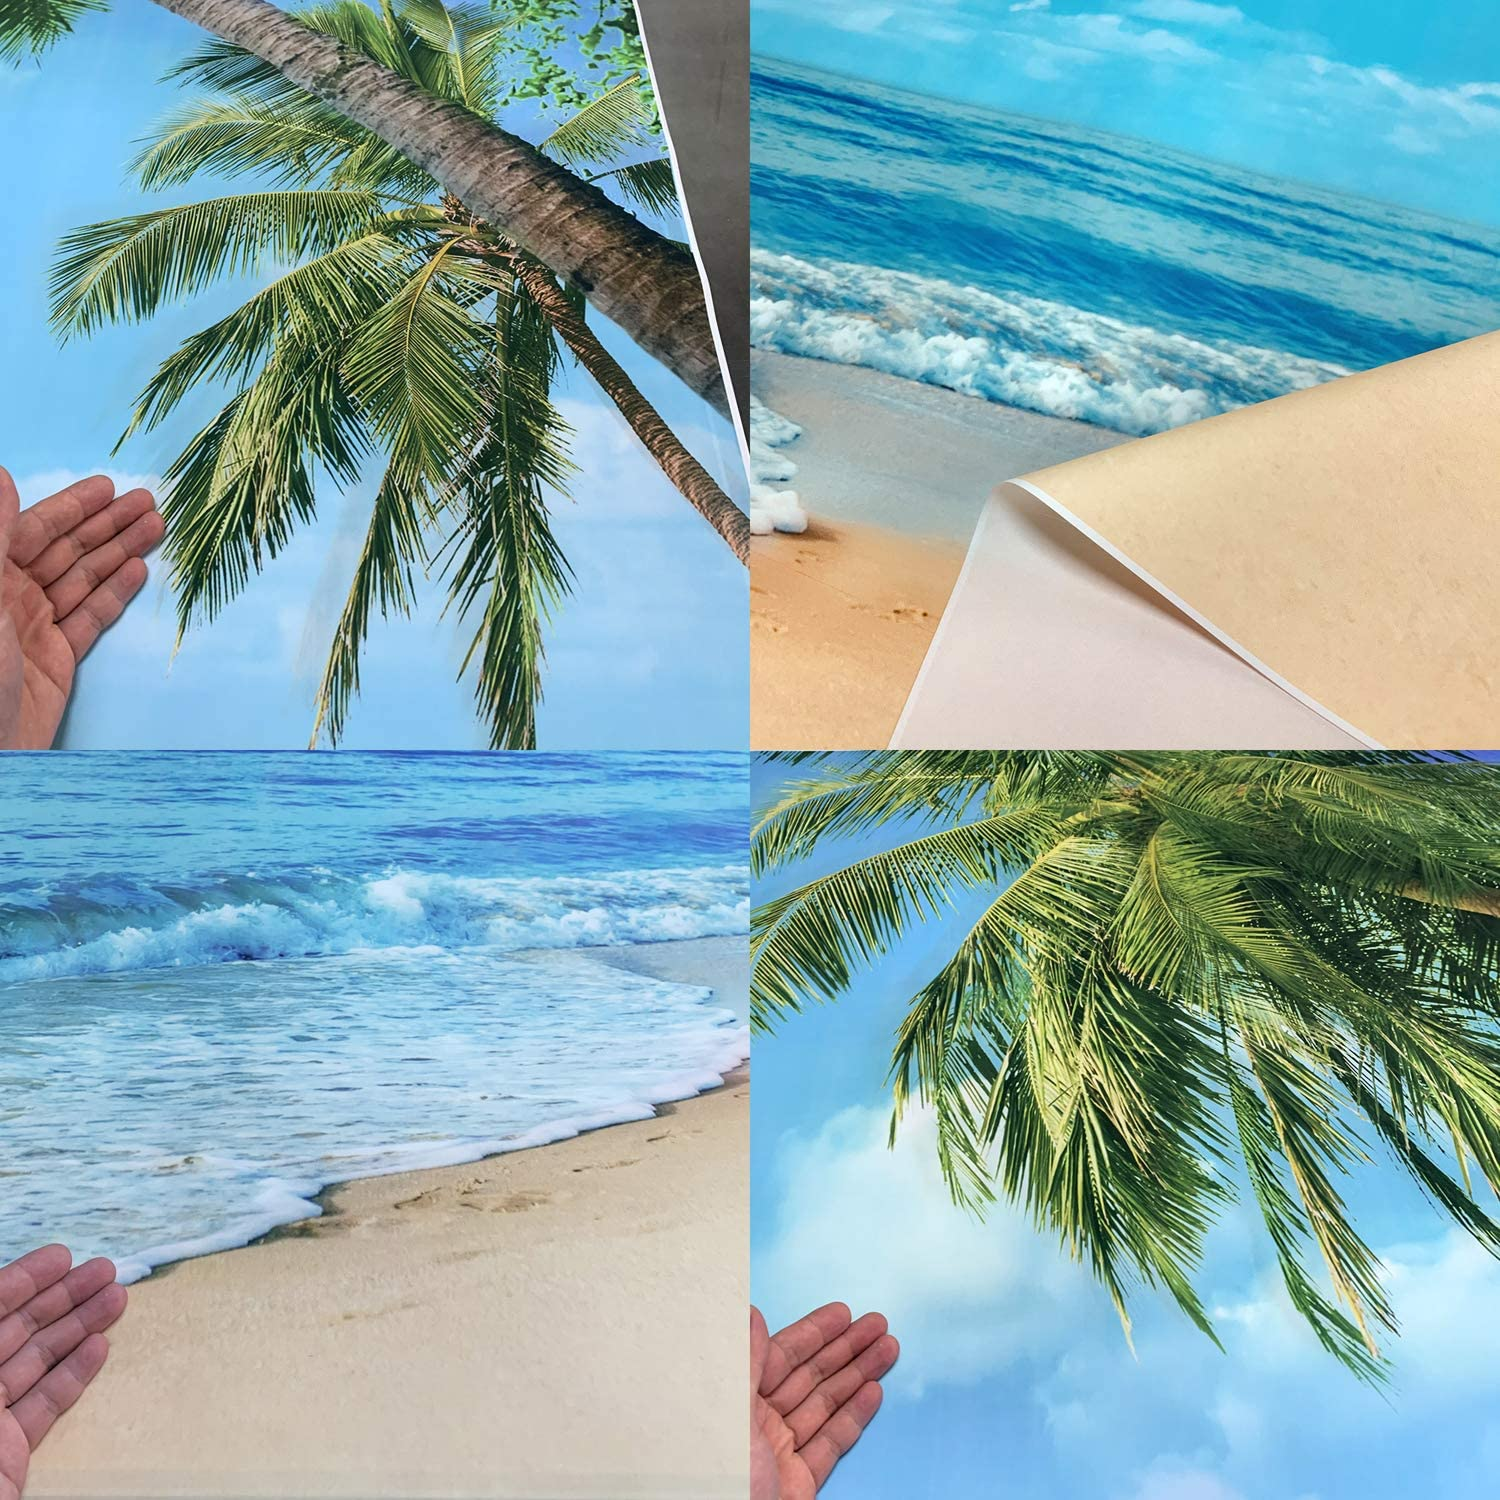 GoEoo 10x5ft Music Pineapple Vinyl Photography Background Cool Summer Vacation Sea Coconut Tree Blue Sky Wood Plank Funny Cute Creative Wedding Music Party Lover Studio Portraits Shoot Backdrop